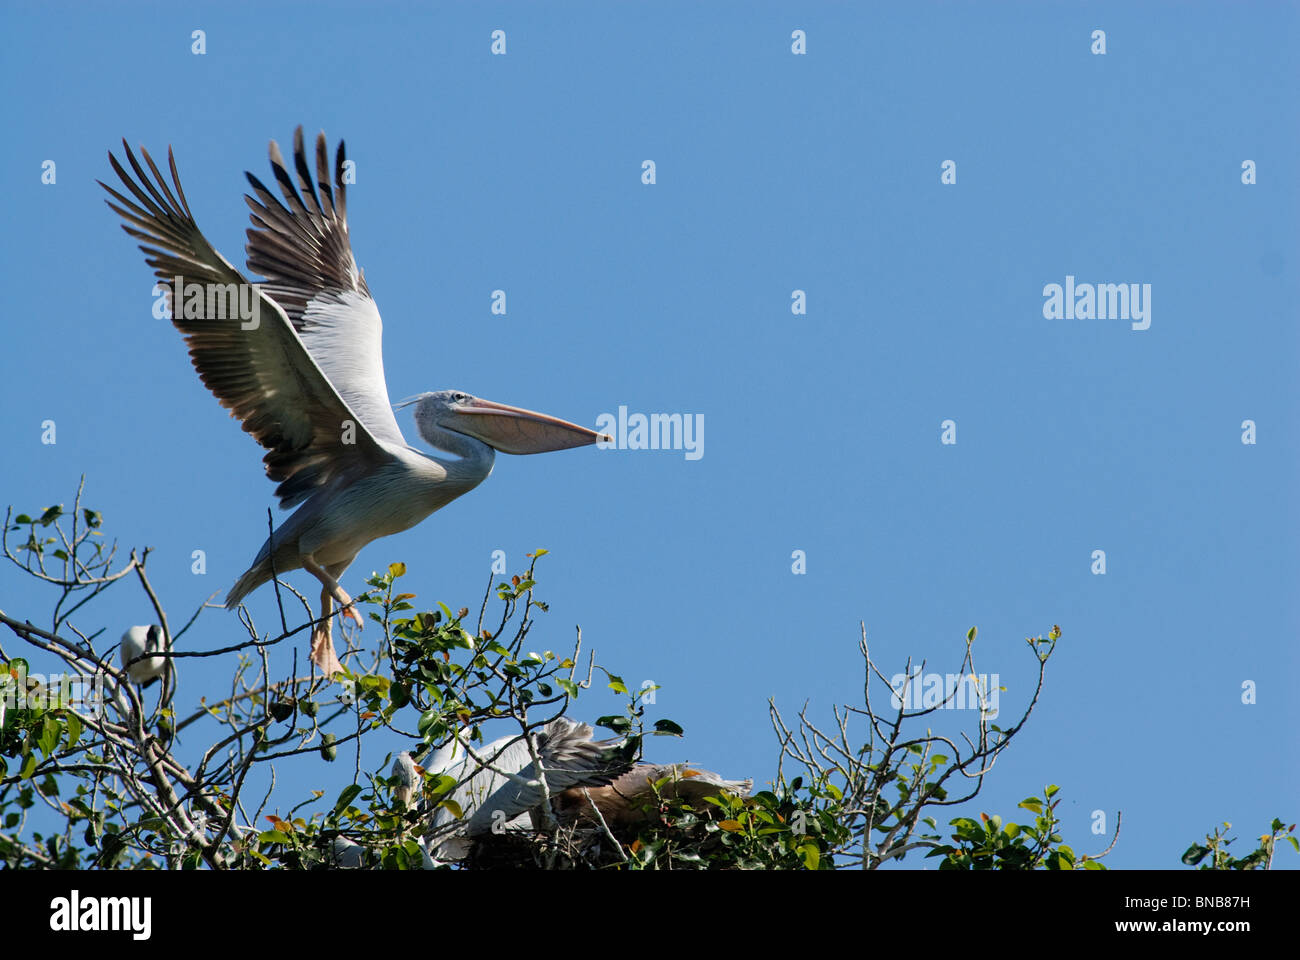 Great White Pelican landing on tree. Kwazulu-Natal, South Africa Stock Photo